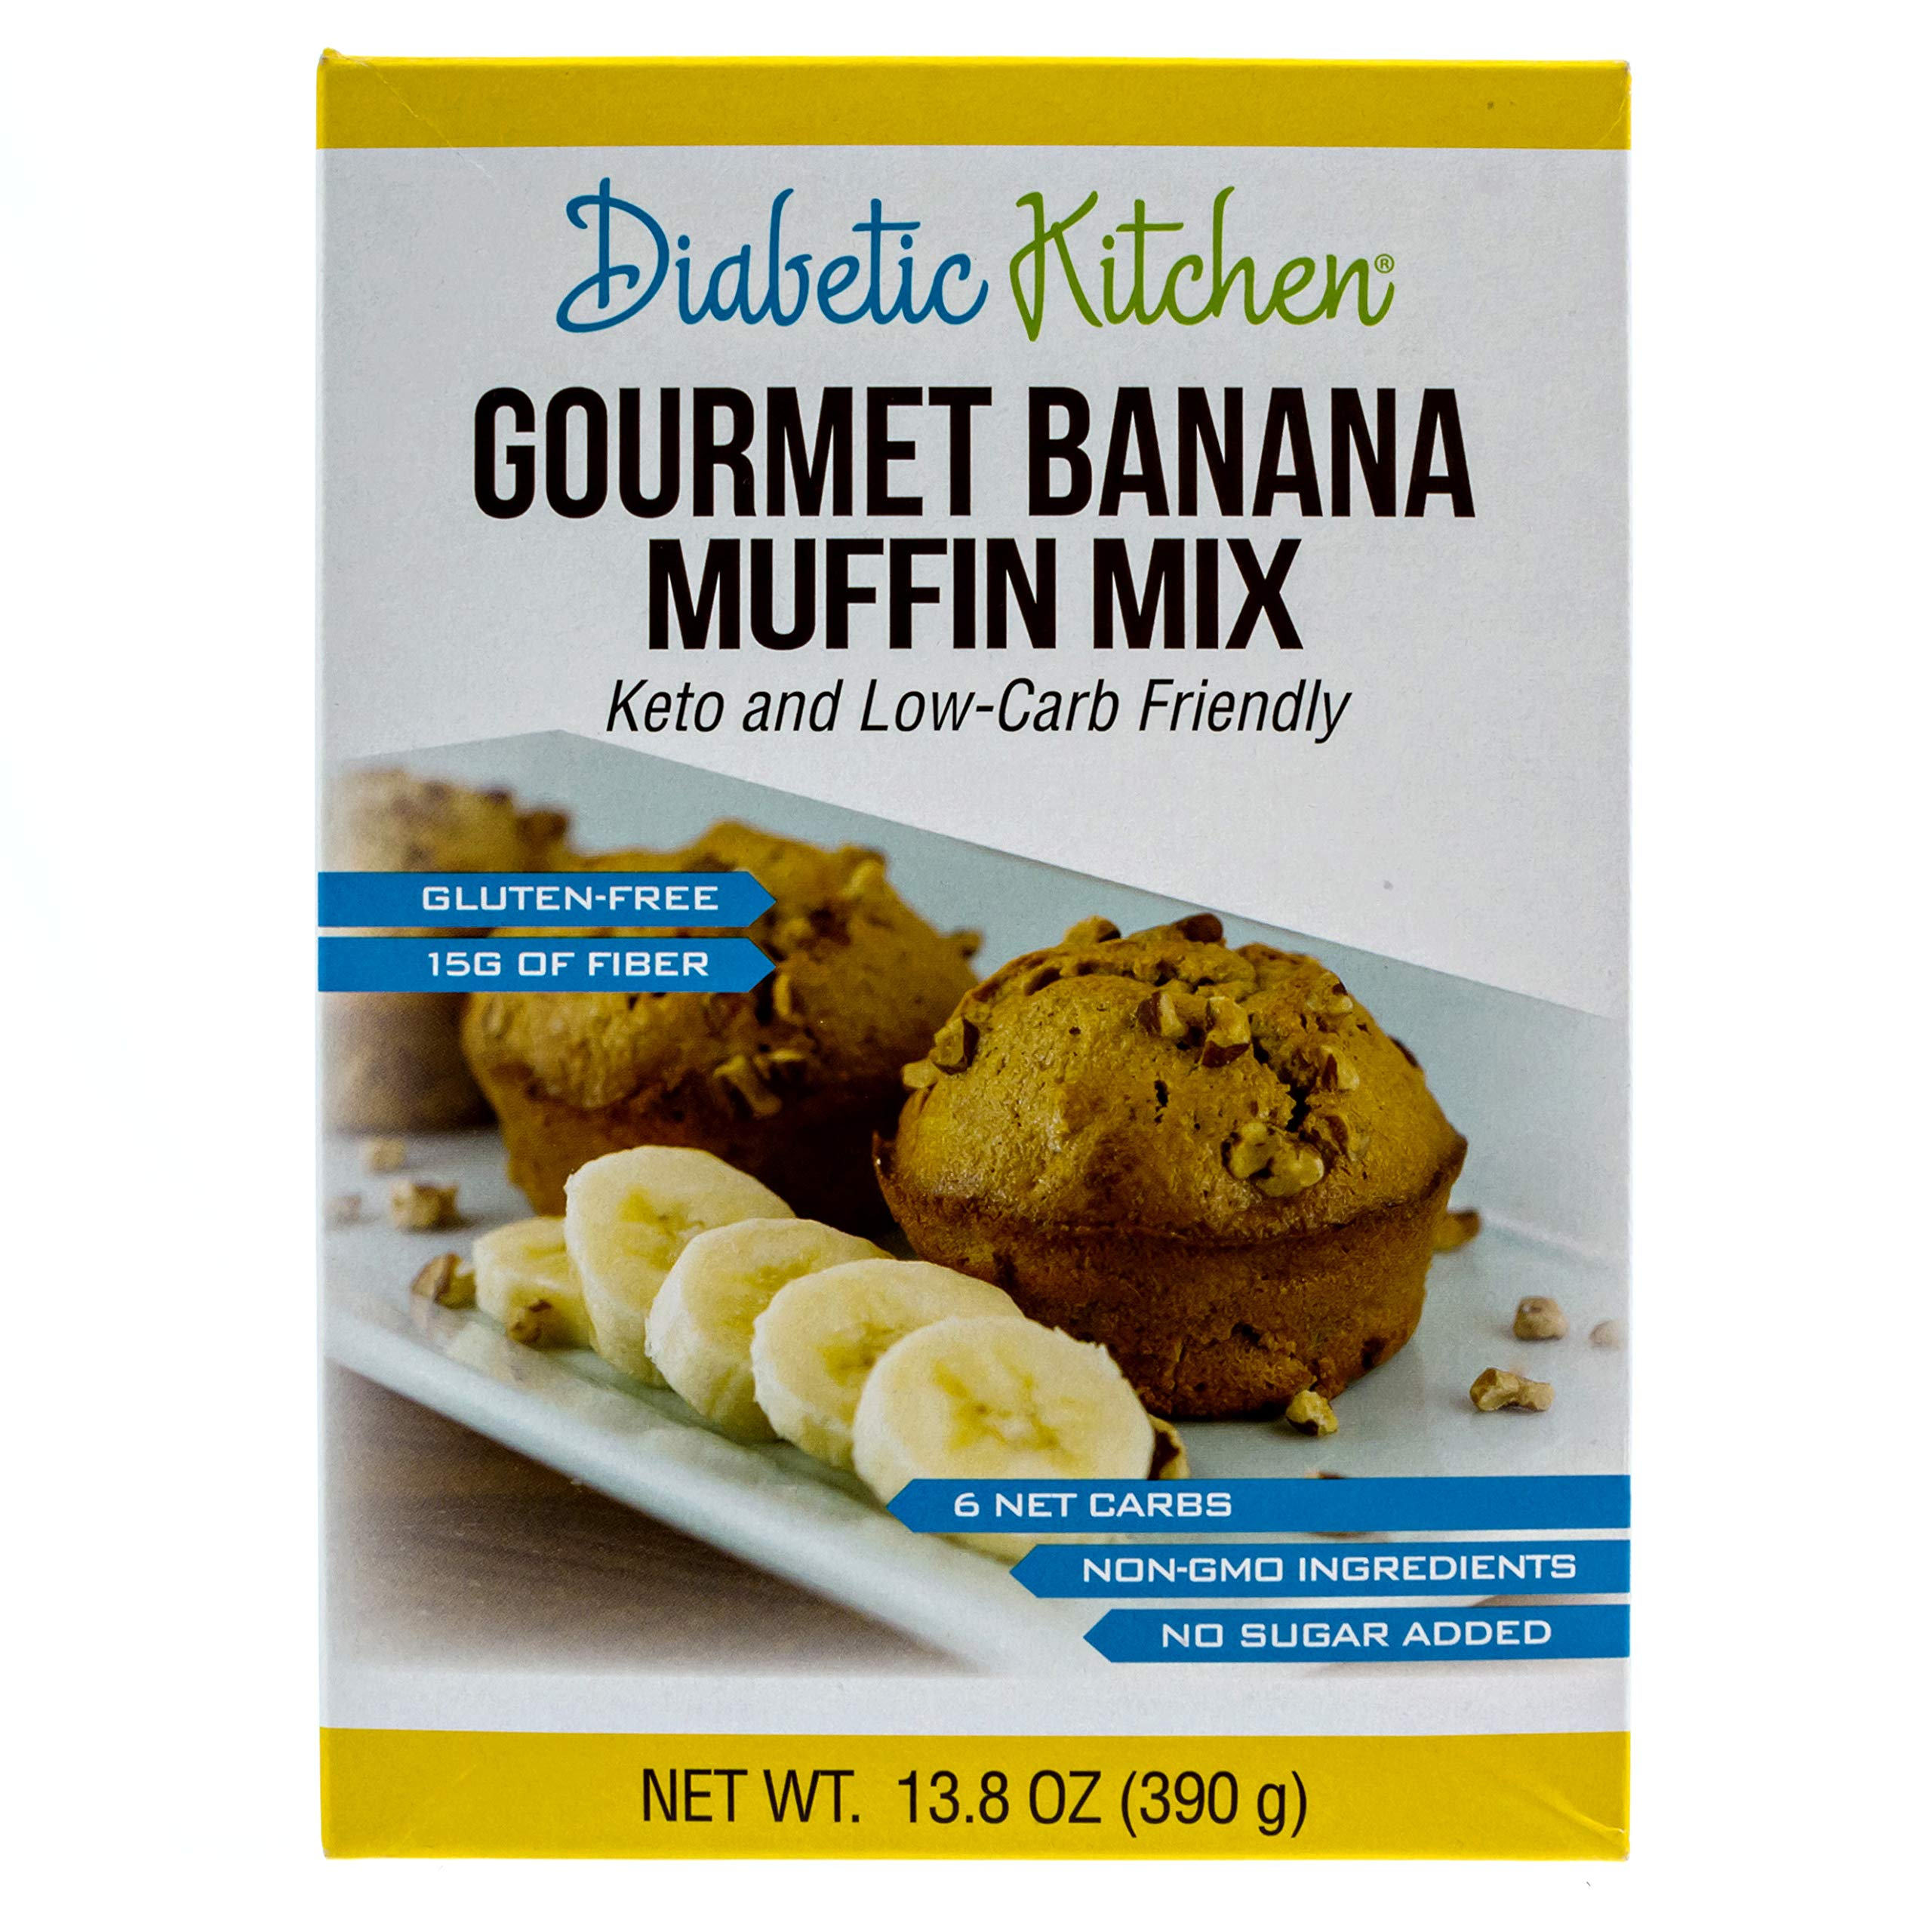 Diabetic Kitchen Muffin Mixes For Bakery Fresh Muffins That Are Low-Carb, Keto-Friendly, No Sugar Added, Gluten-Free, High-Fiber, Non-GMO, No Artificial Sweeteners (Gourmet Banana) by Diabetic Kitchen